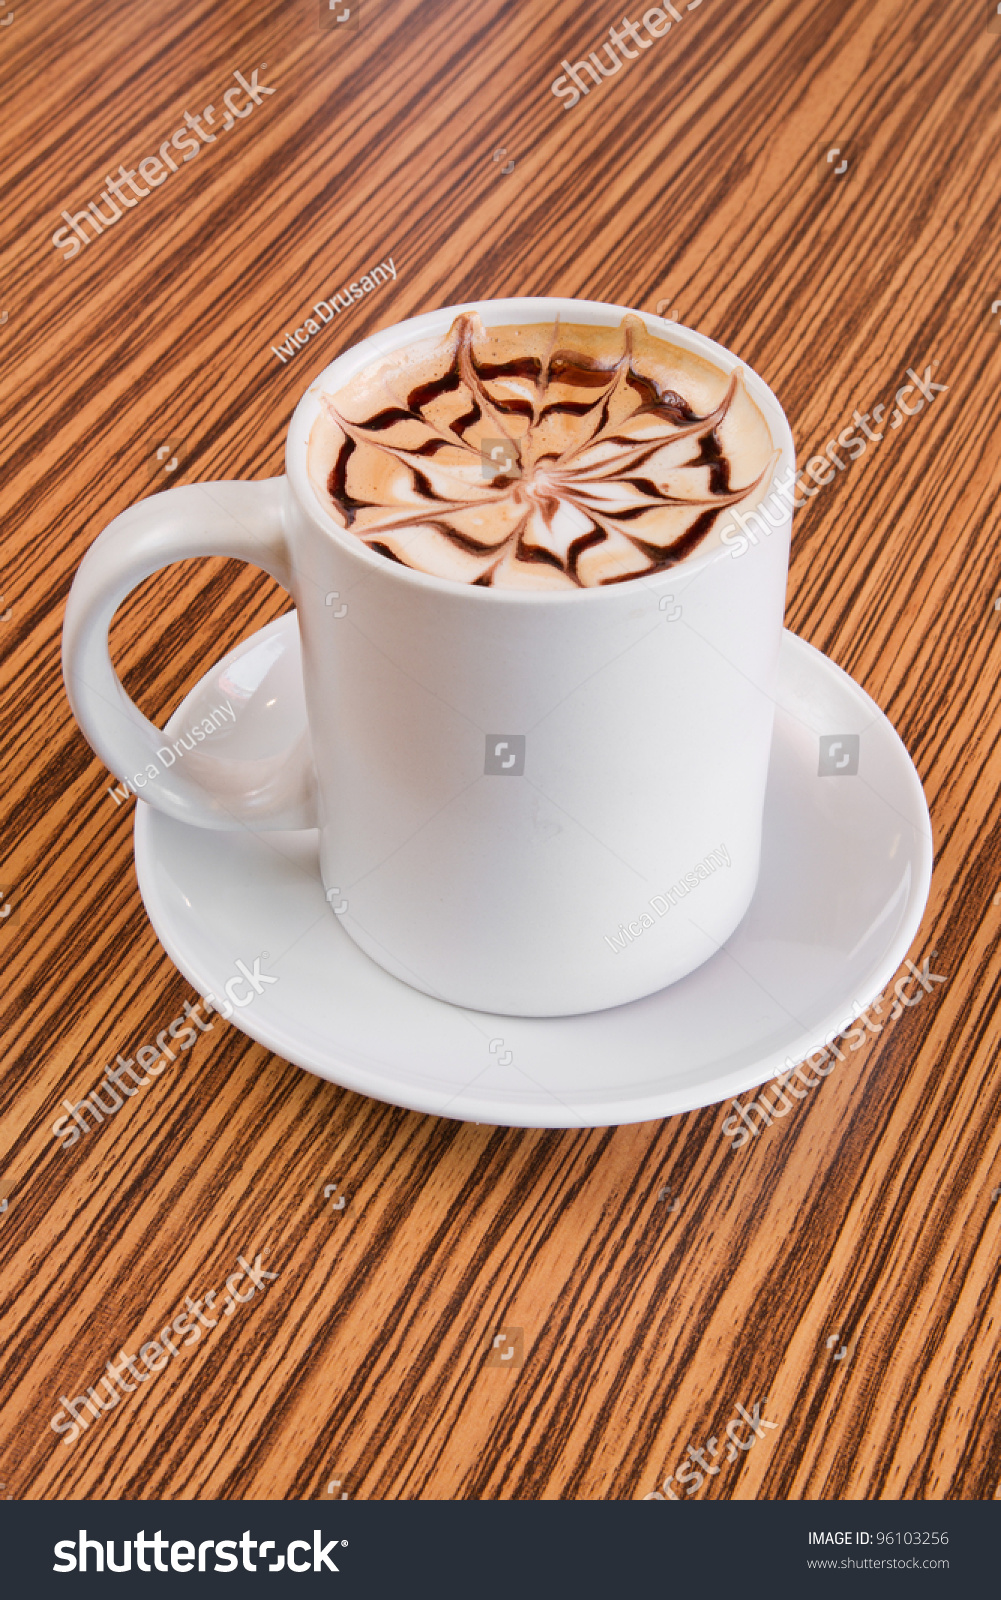 large cup of coffee decorated with milk froth and chocolate drawing stock photo 96103256. Black Bedroom Furniture Sets. Home Design Ideas